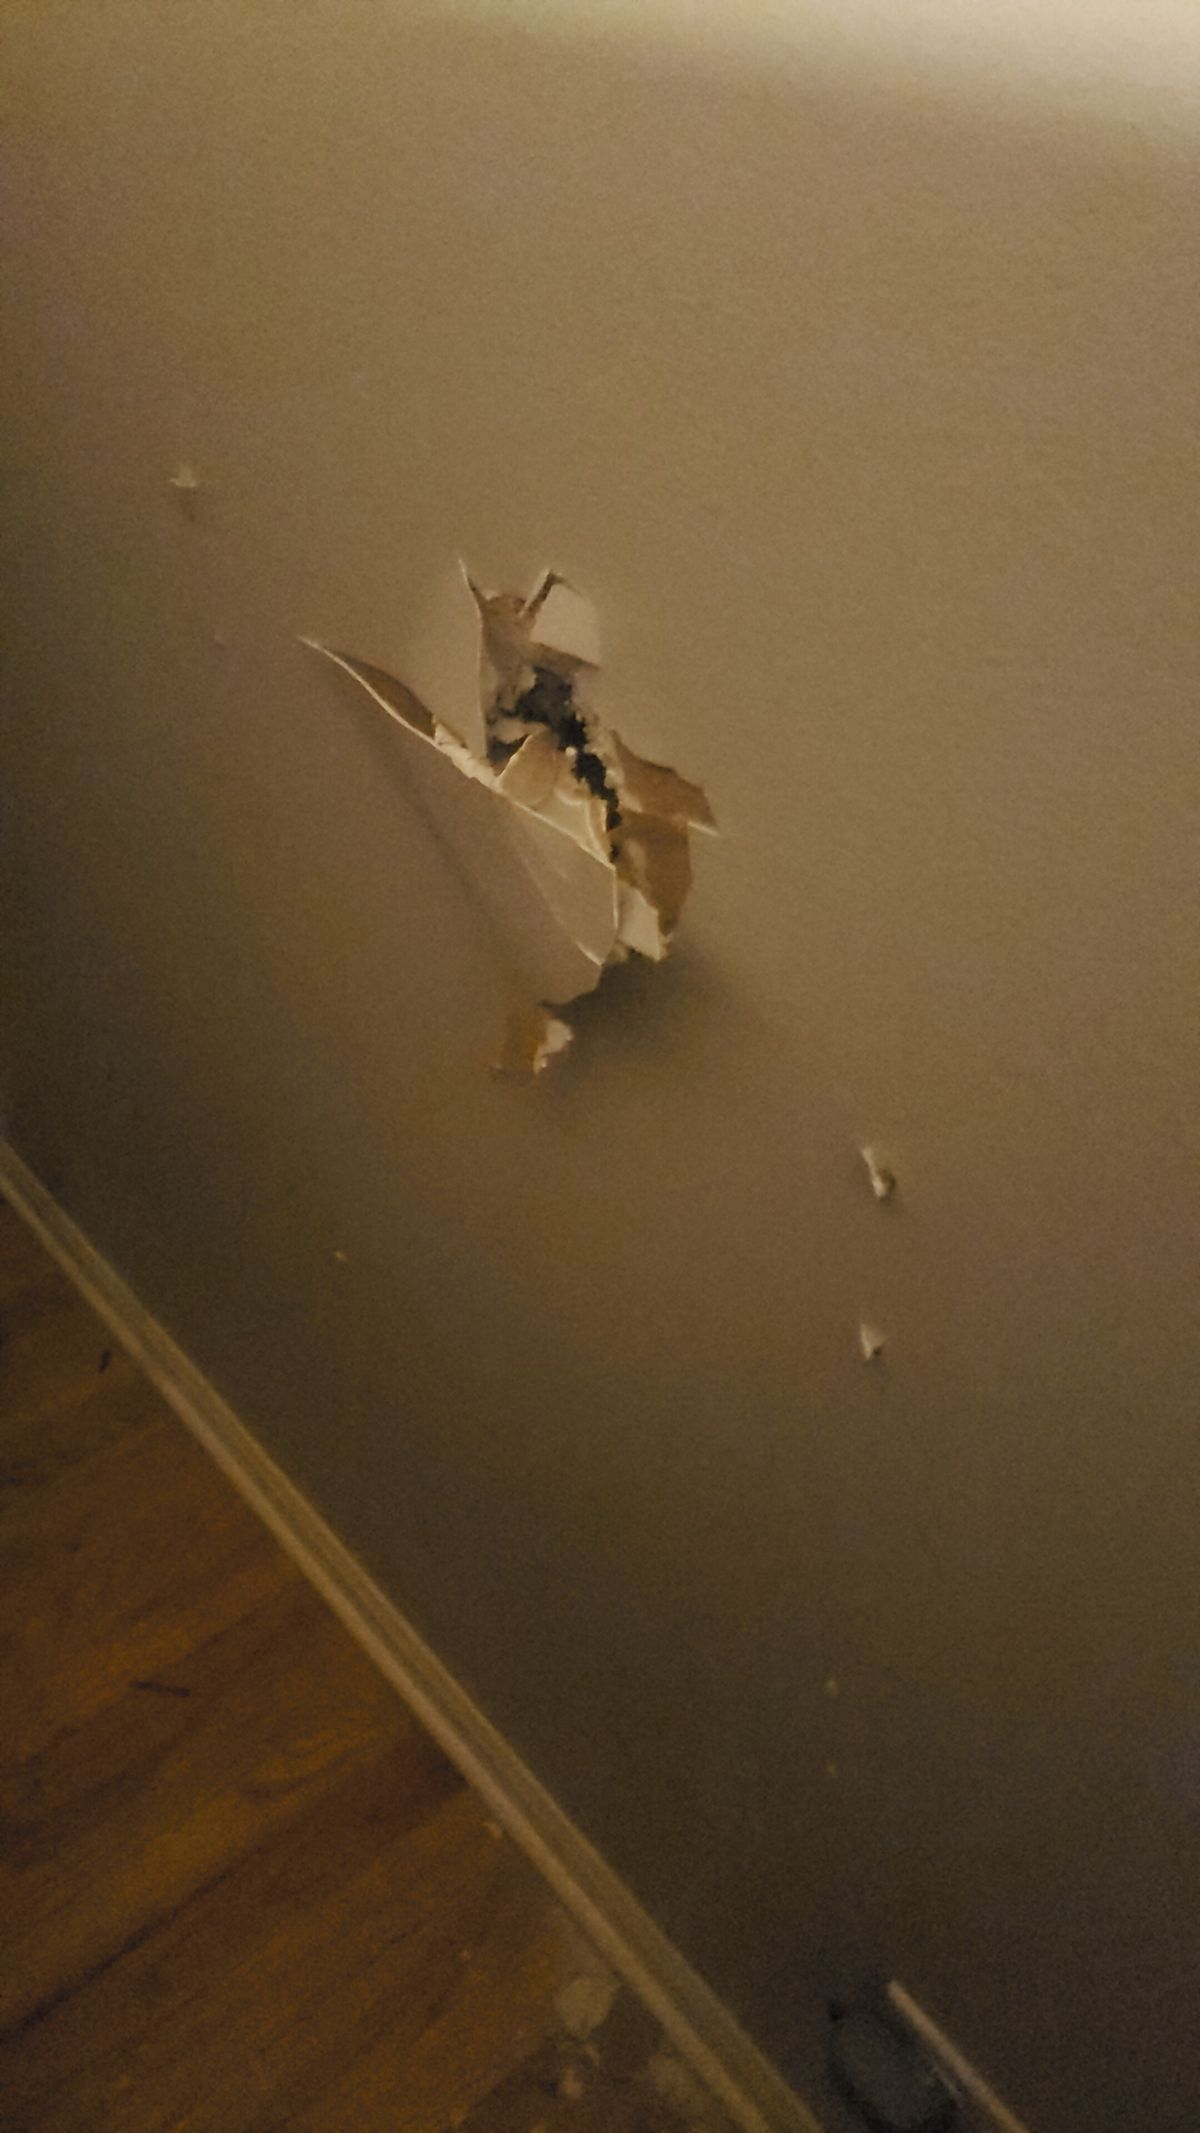 The hole in Dave Papish and Ashley Holmes' bedroom wall caused by a claw hammer from the neighboring unit.